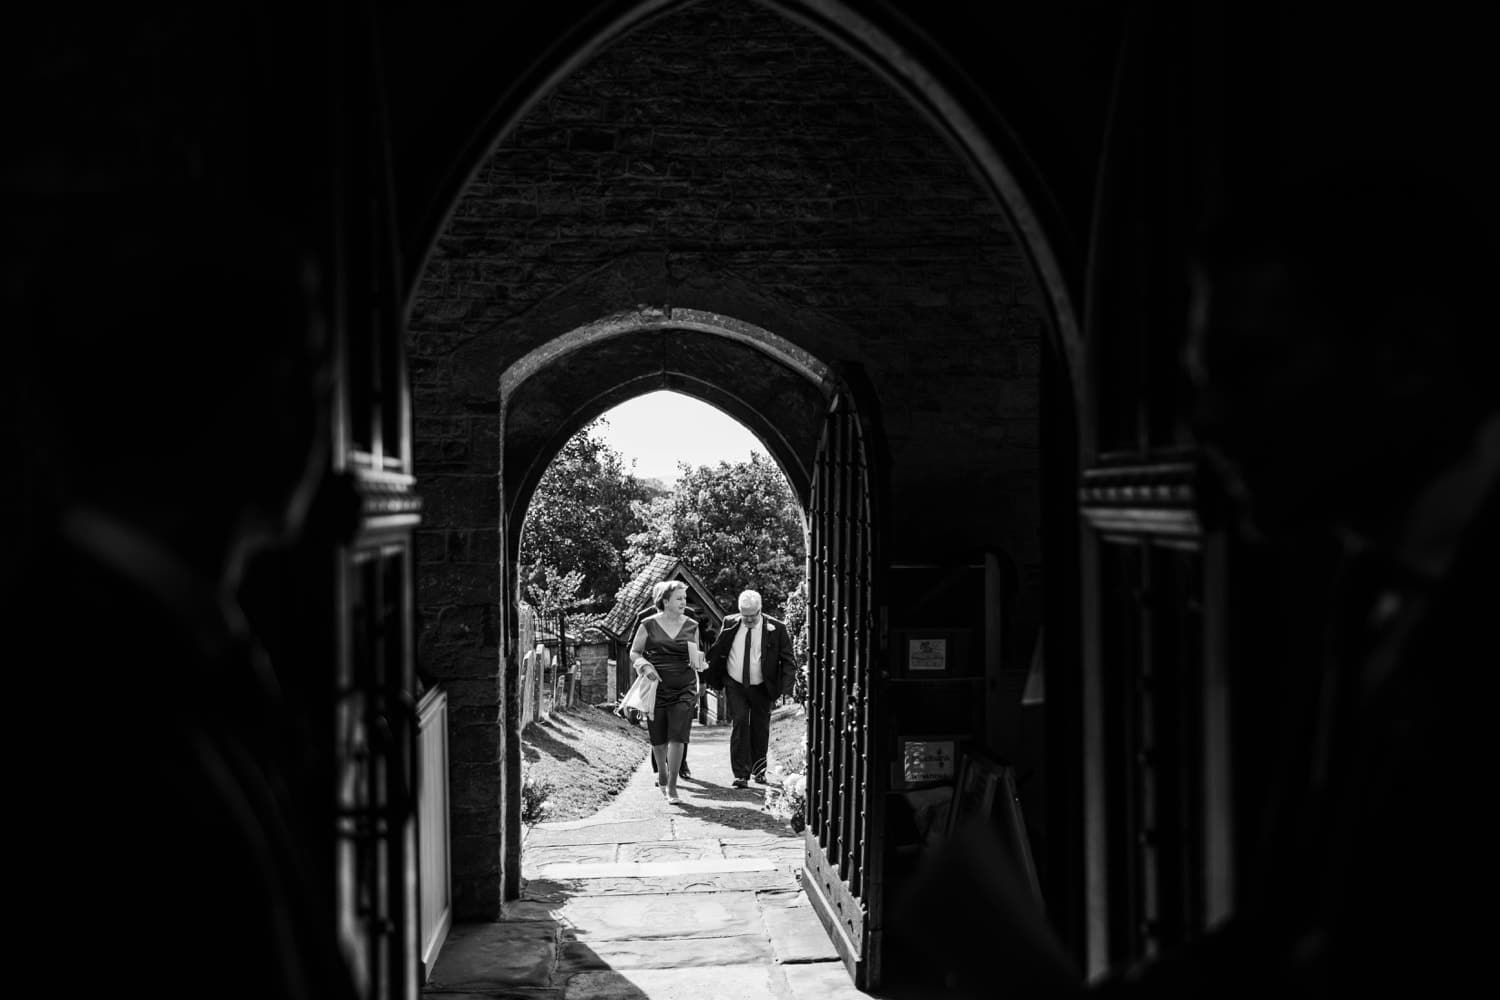 Wedding guests arriving at St Andrews Church in Clevedon, Somerset